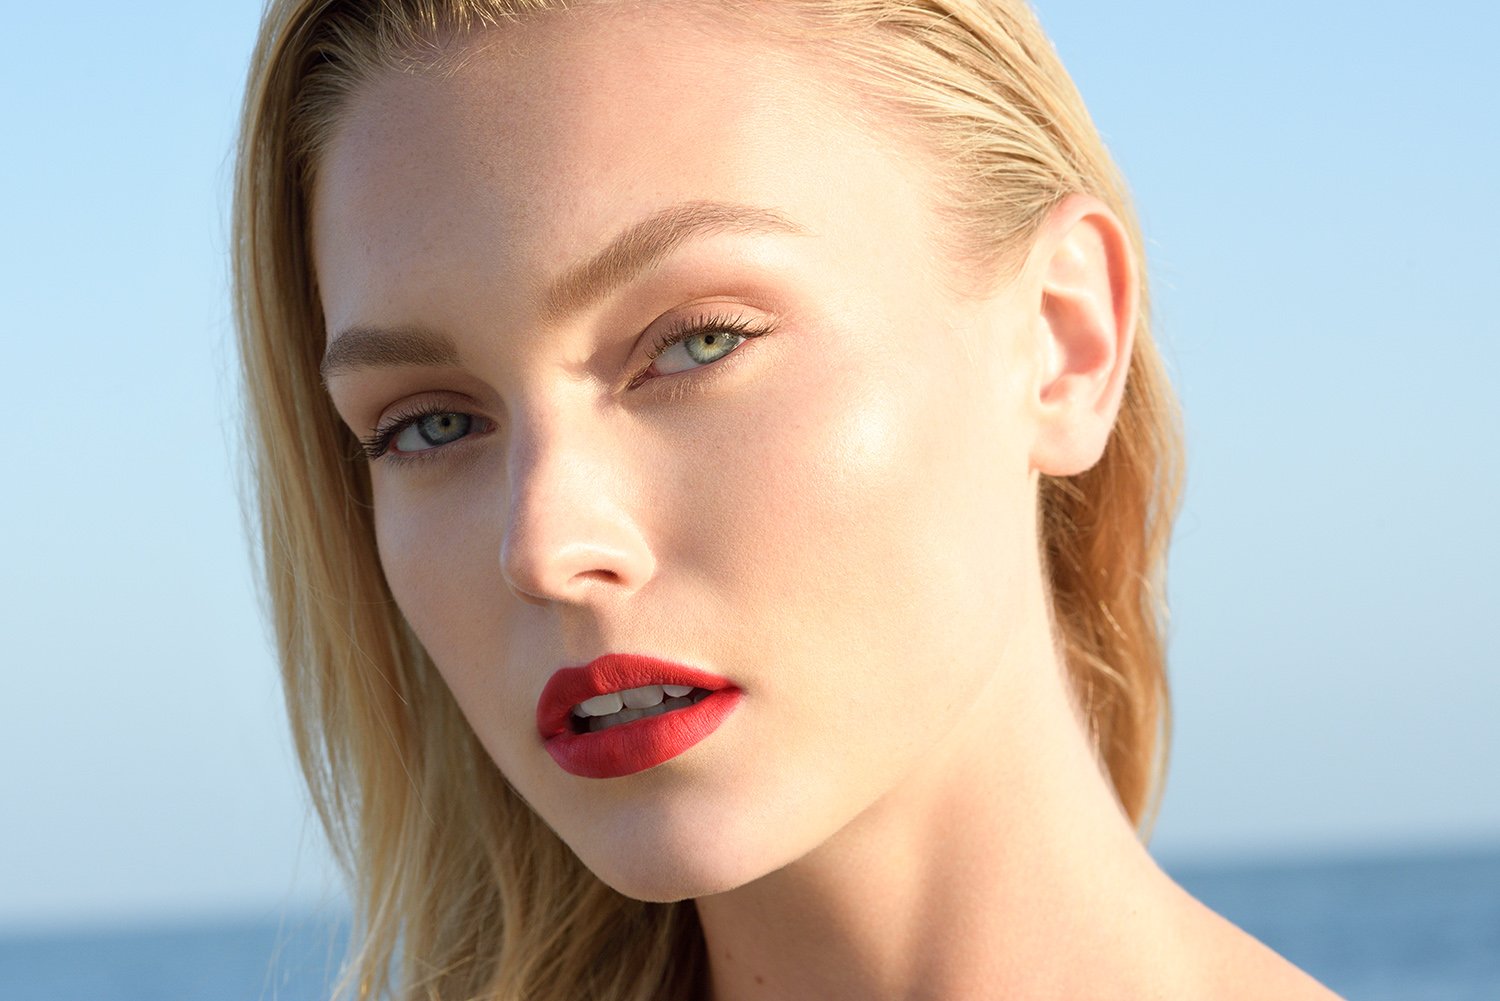 Kirra Jones looks stunning in bright red lips for Laugh Kiss Care beauty campaign